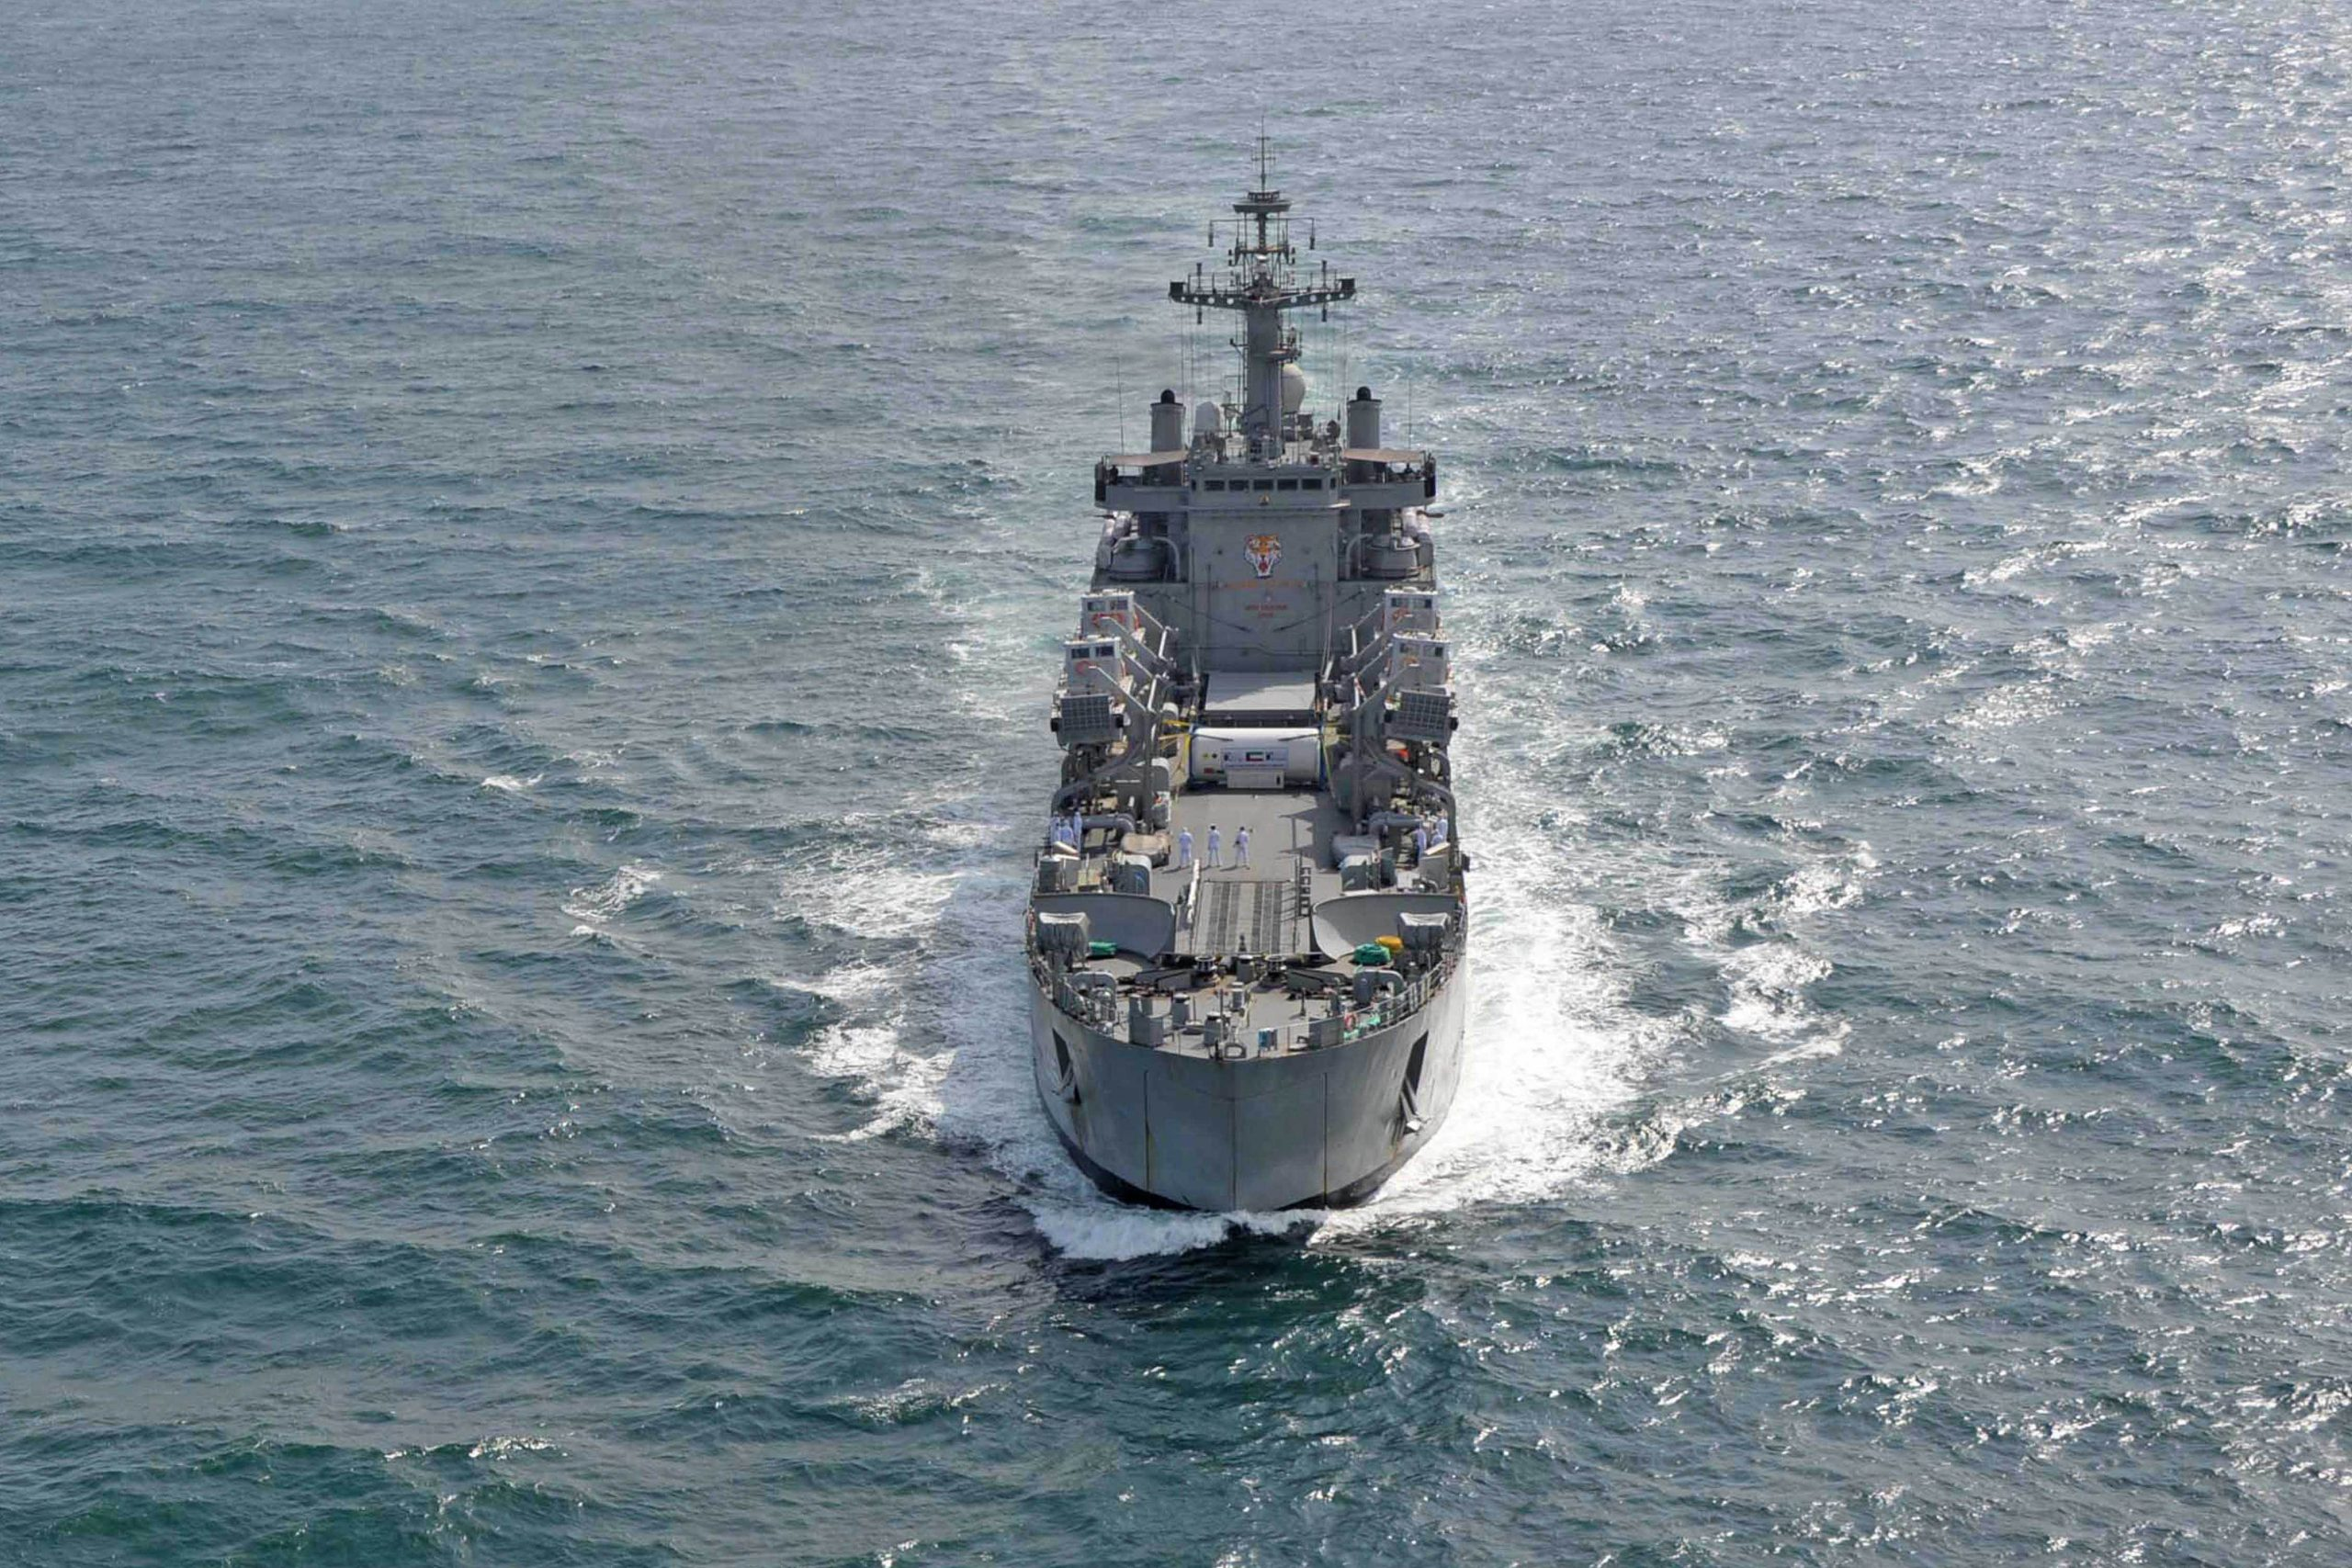 INDIAN NAVY'S FIRST TRAINING SQUADRON (1TS) VISIT TO SRI LANKA